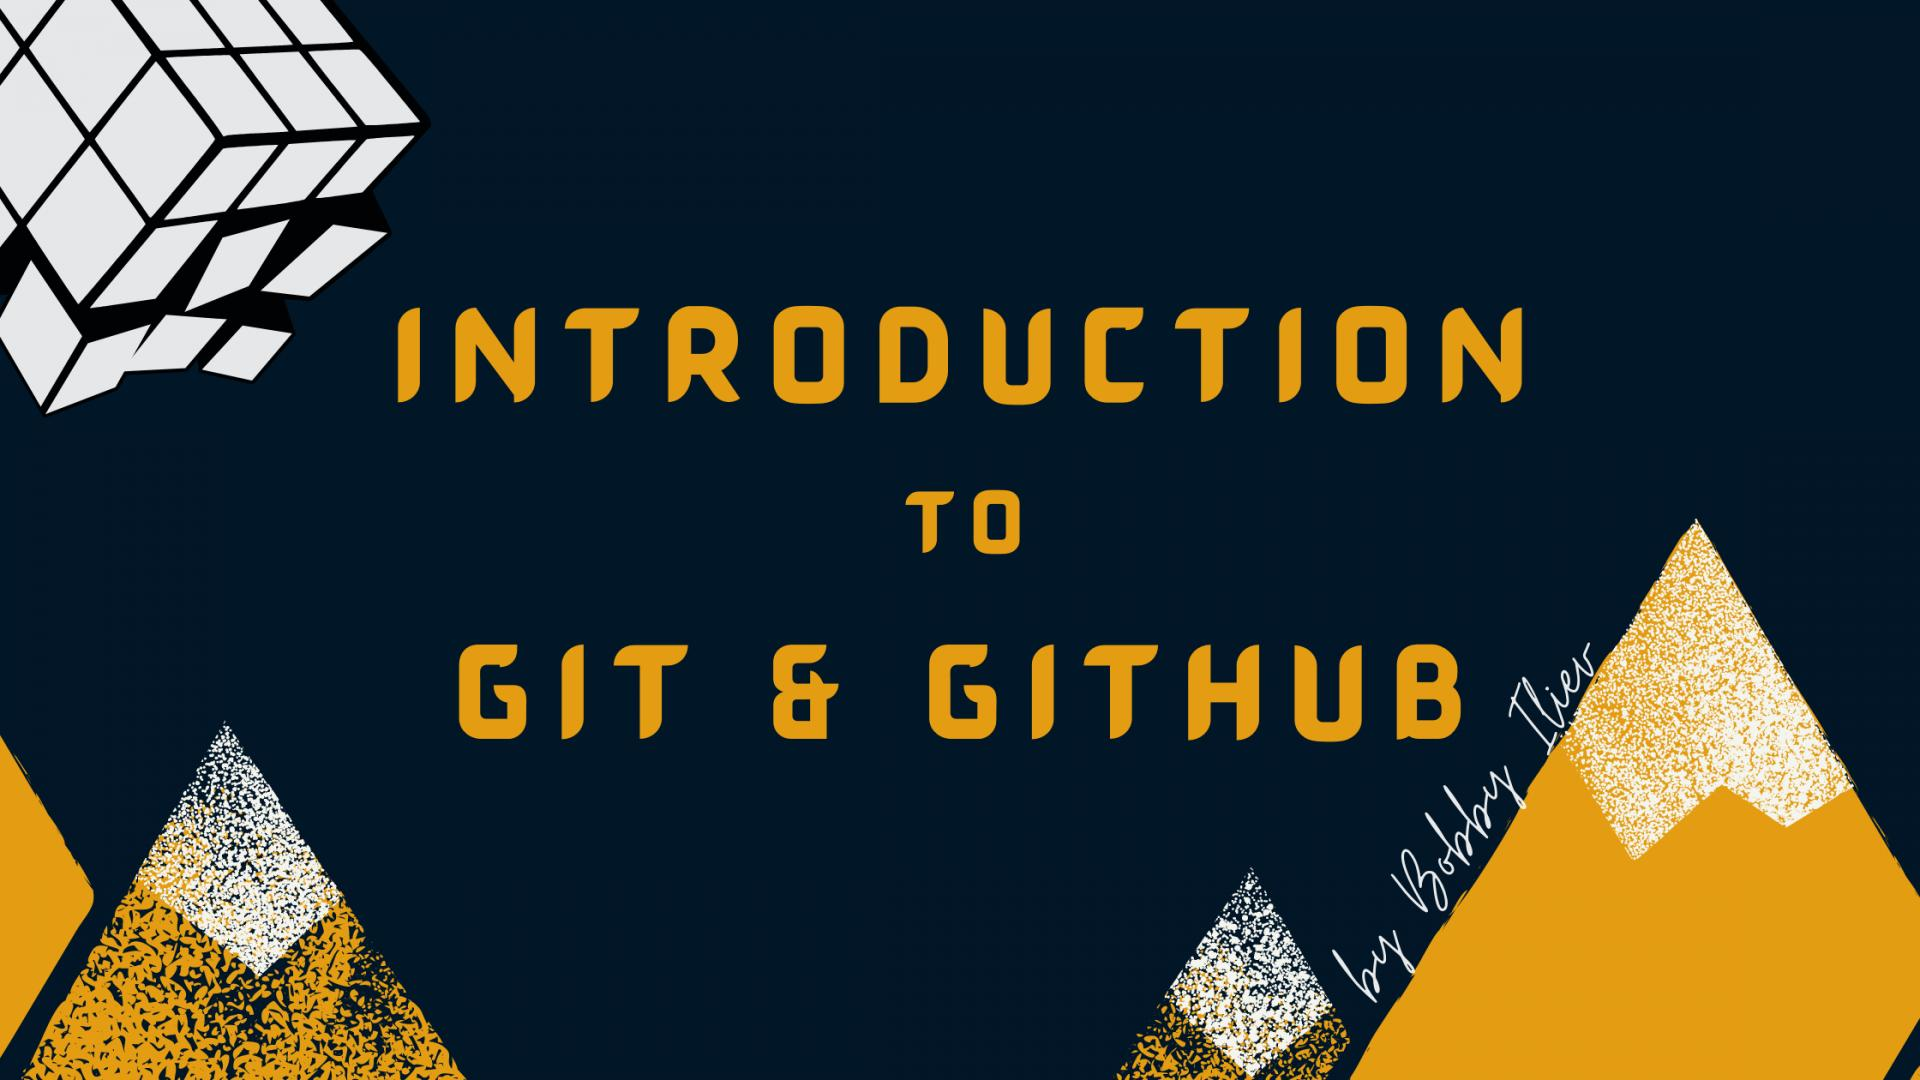 Open-source Introduction to Git and GitHub eBook 💡